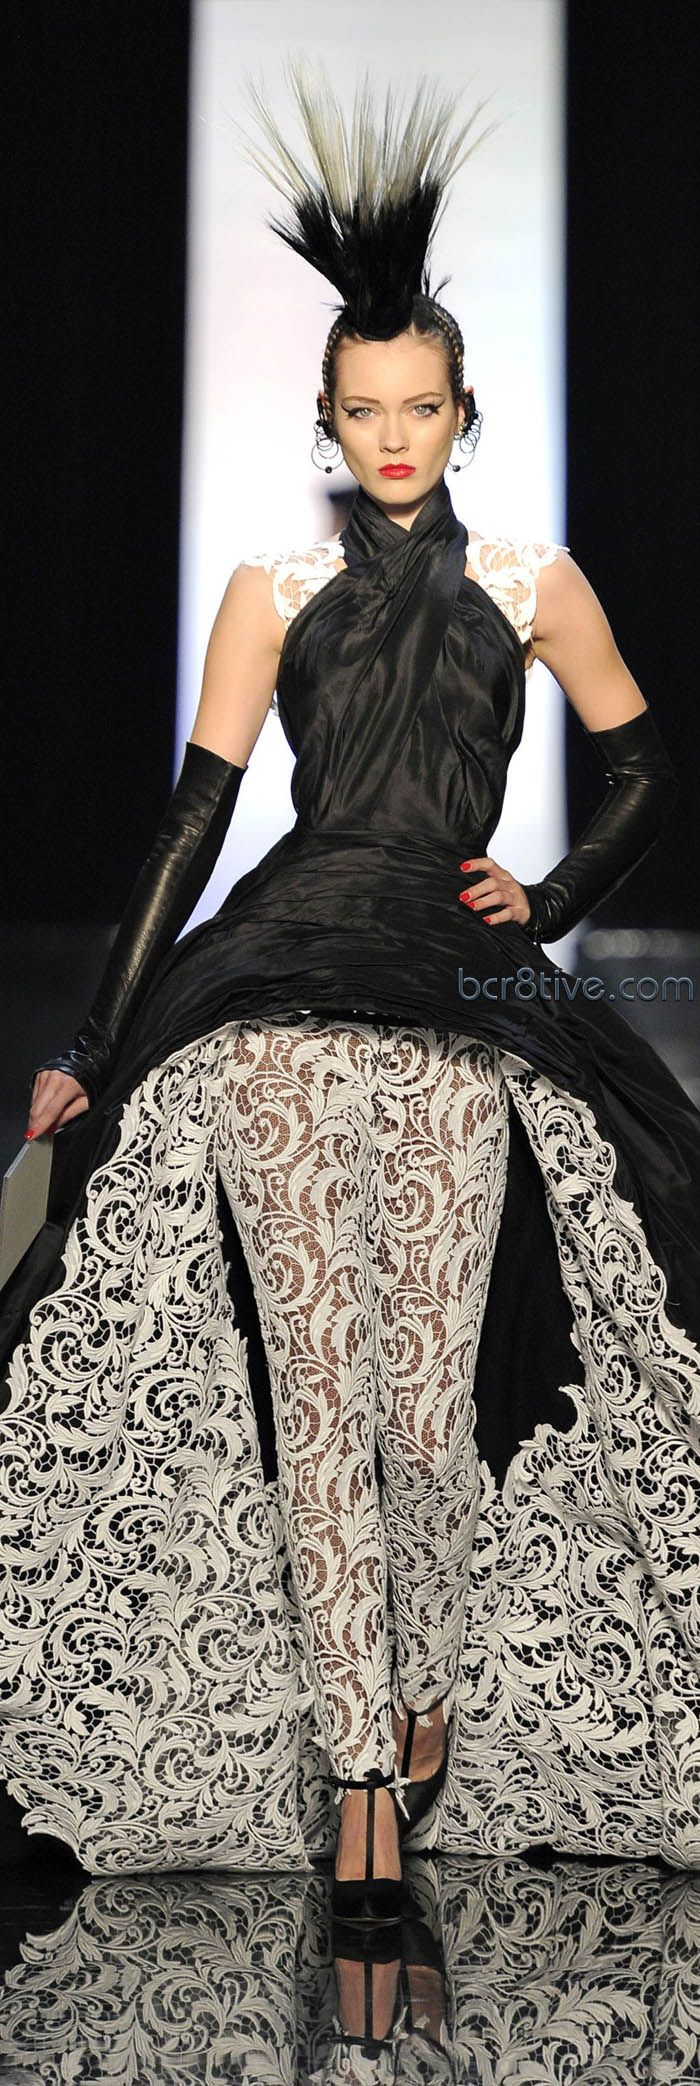 Jean Paul Gaultier Haute Couture Spring Summer 2011. Top detail.